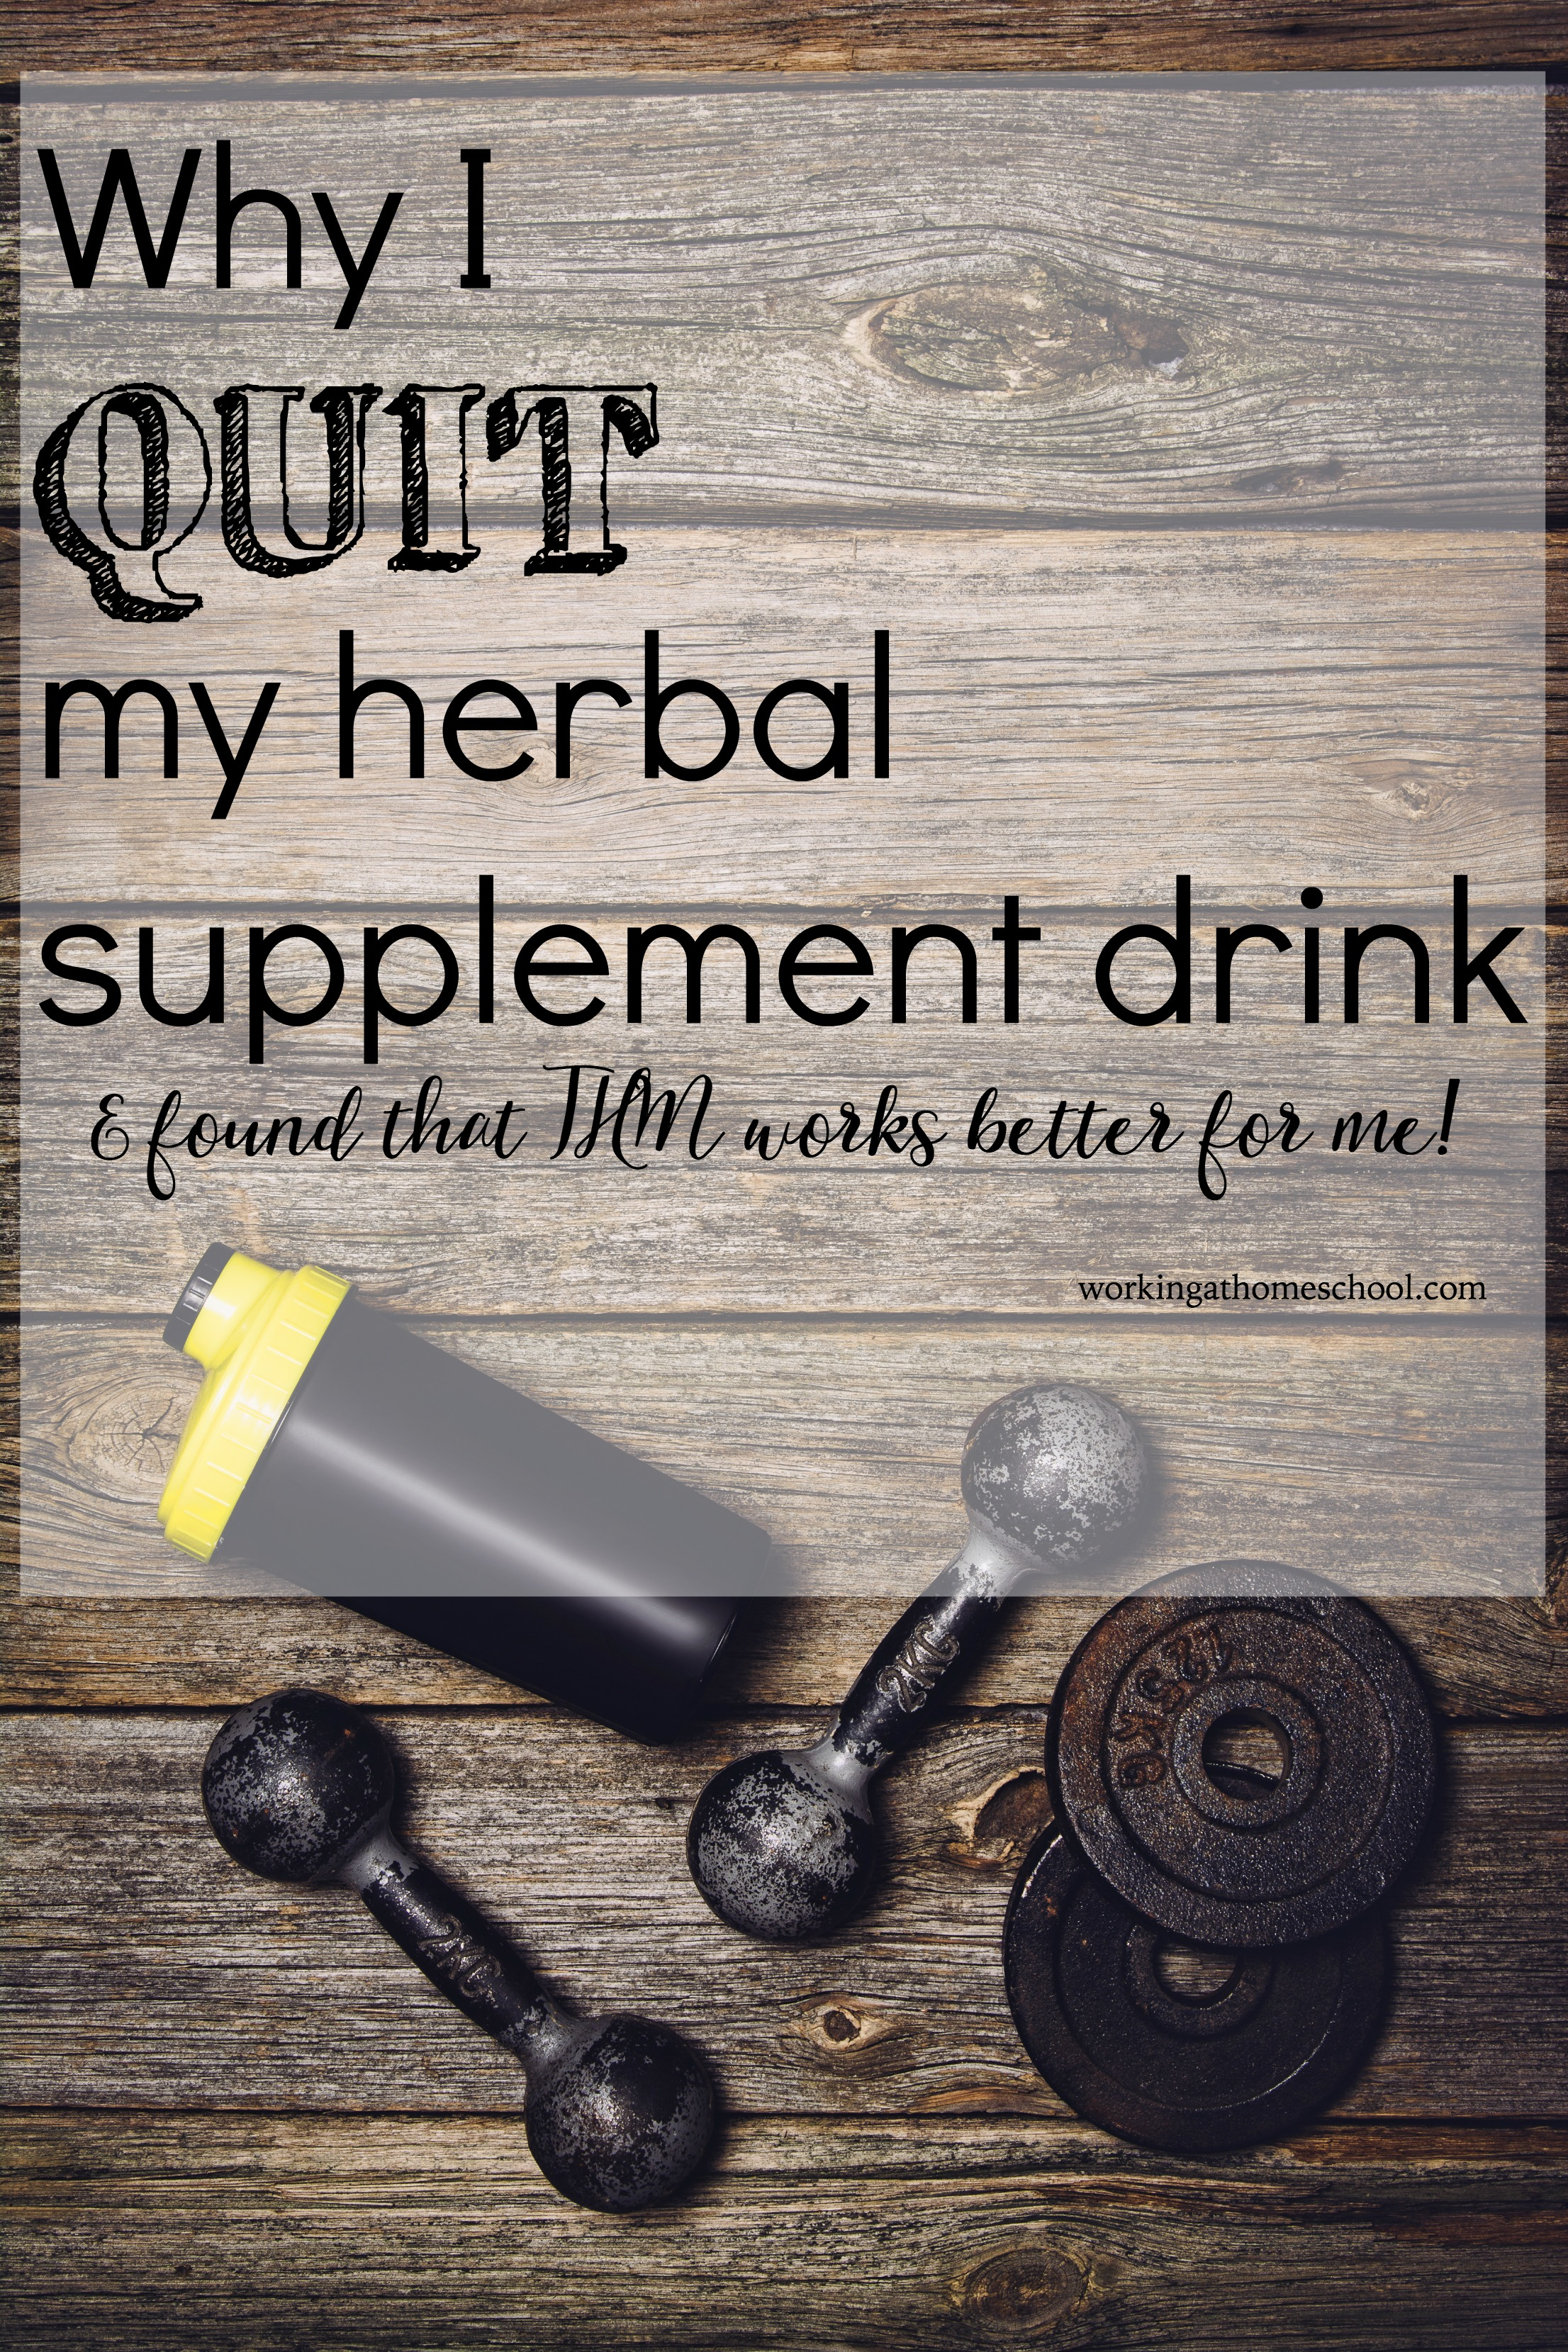 Why I quit my herbal supplement drink